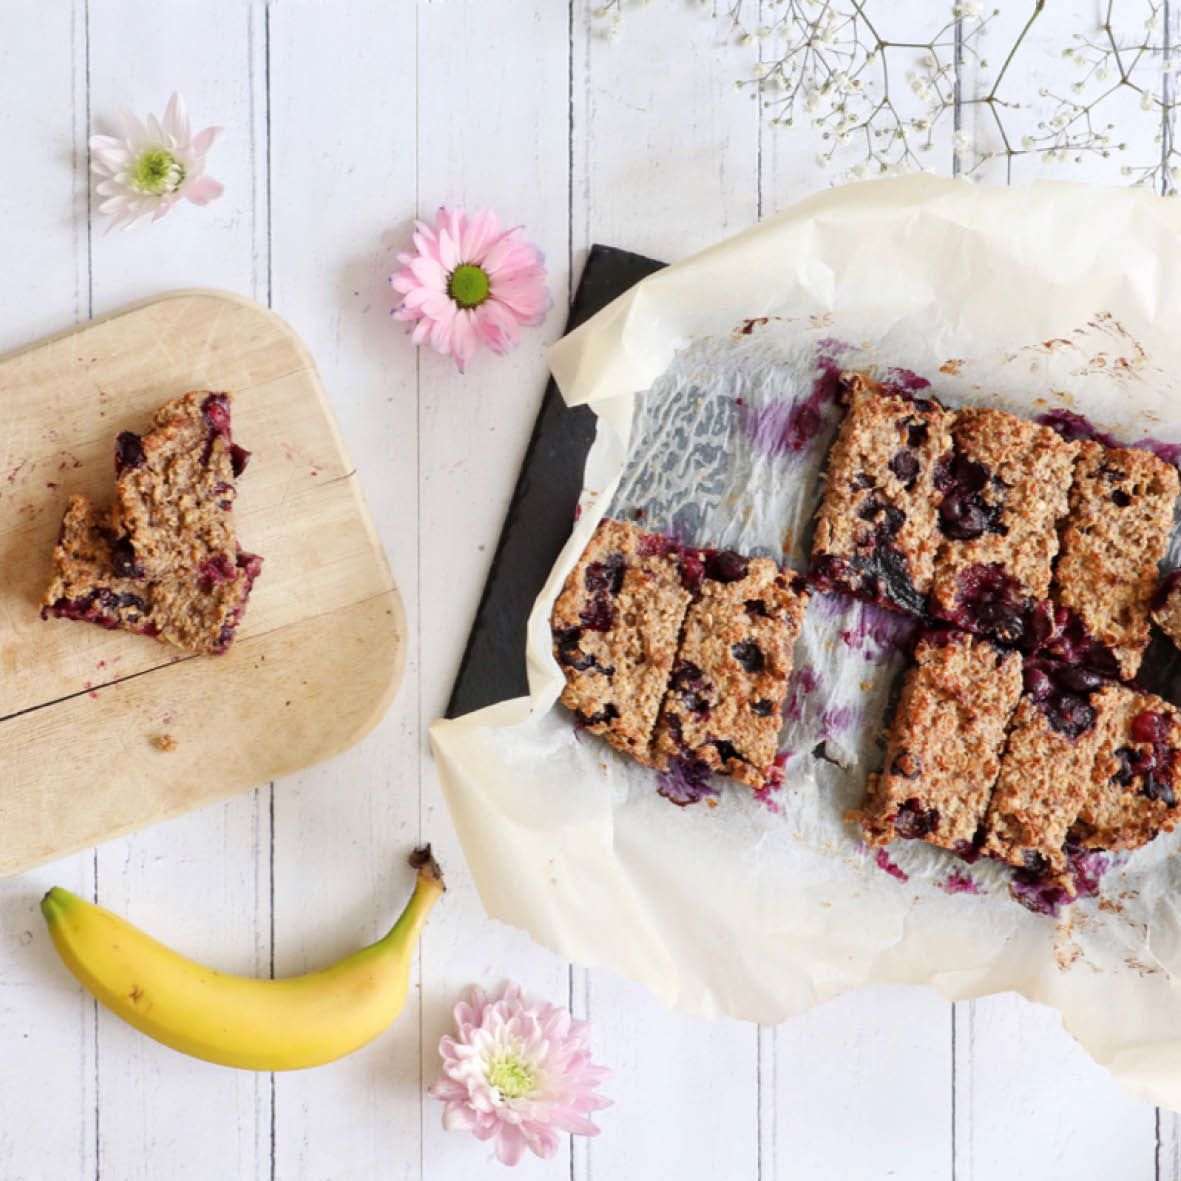 Blueberry_Breakfast_Bars.jpg